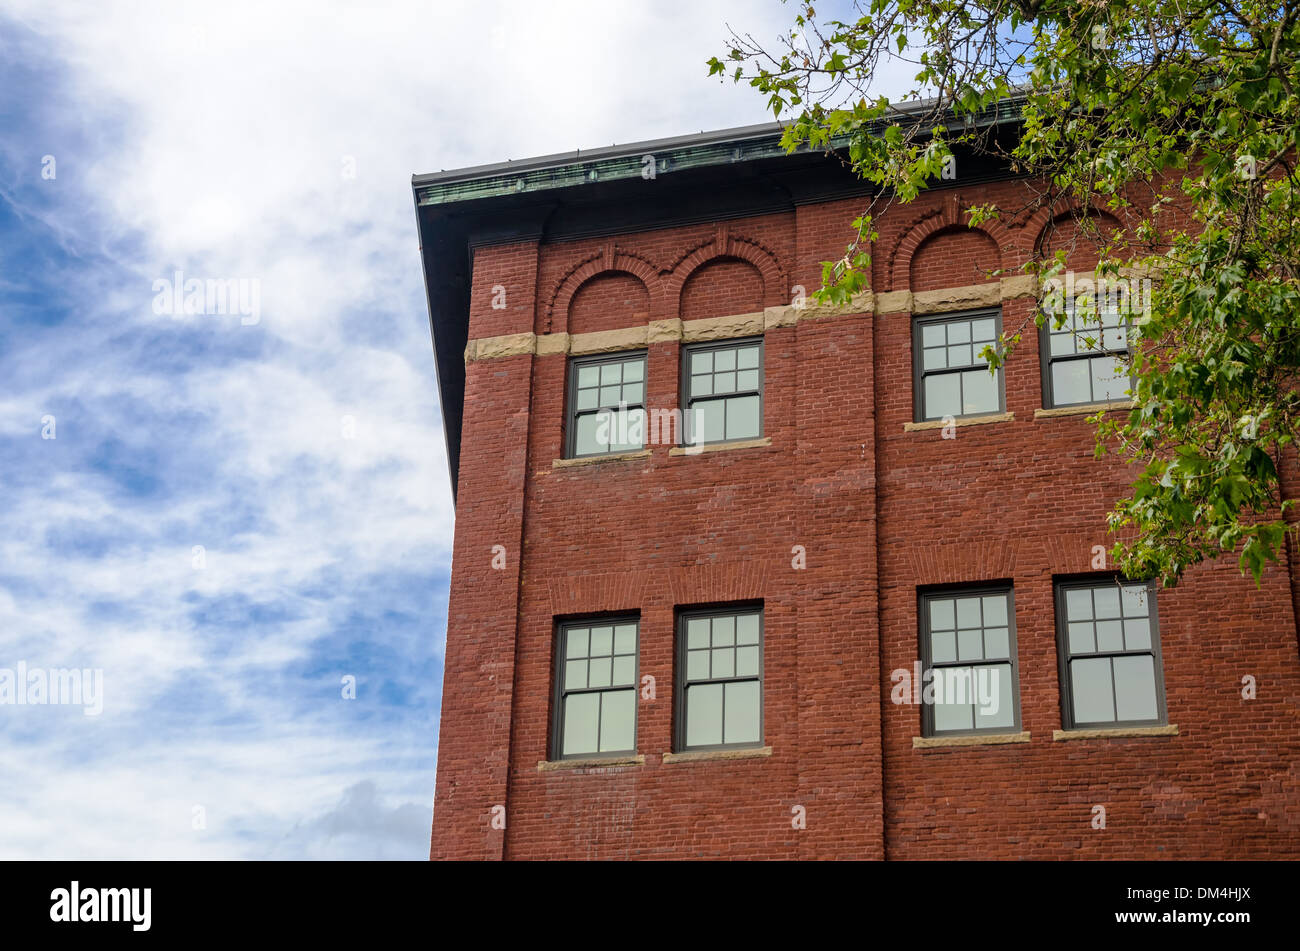 Old red brick building in downtown Portland, Oregon - Stock Image